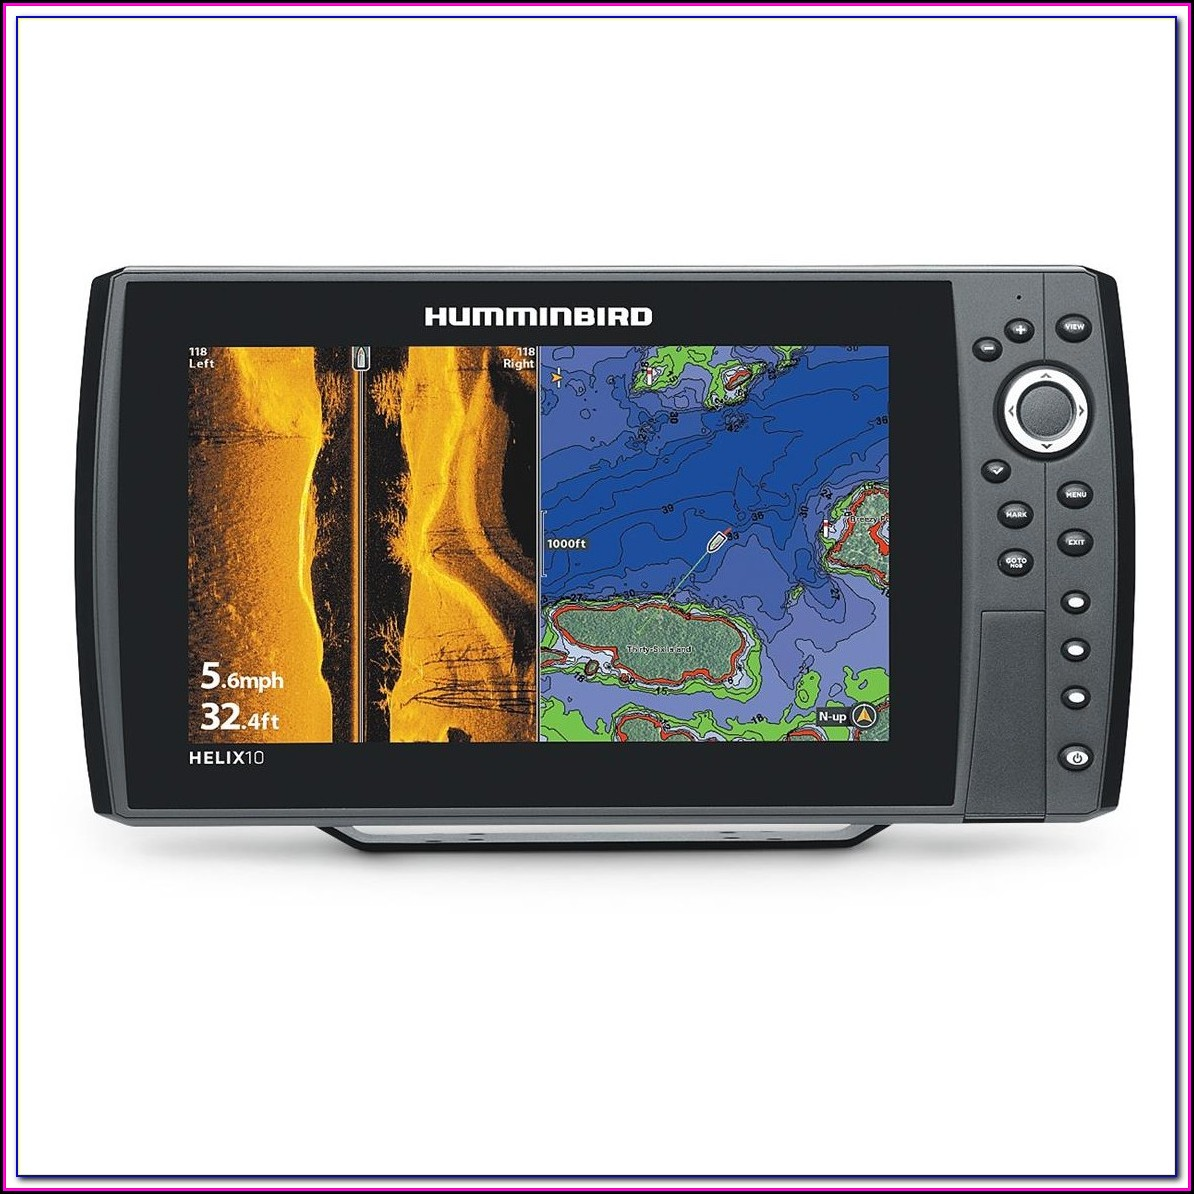 Humminbird Gps Mapping Software